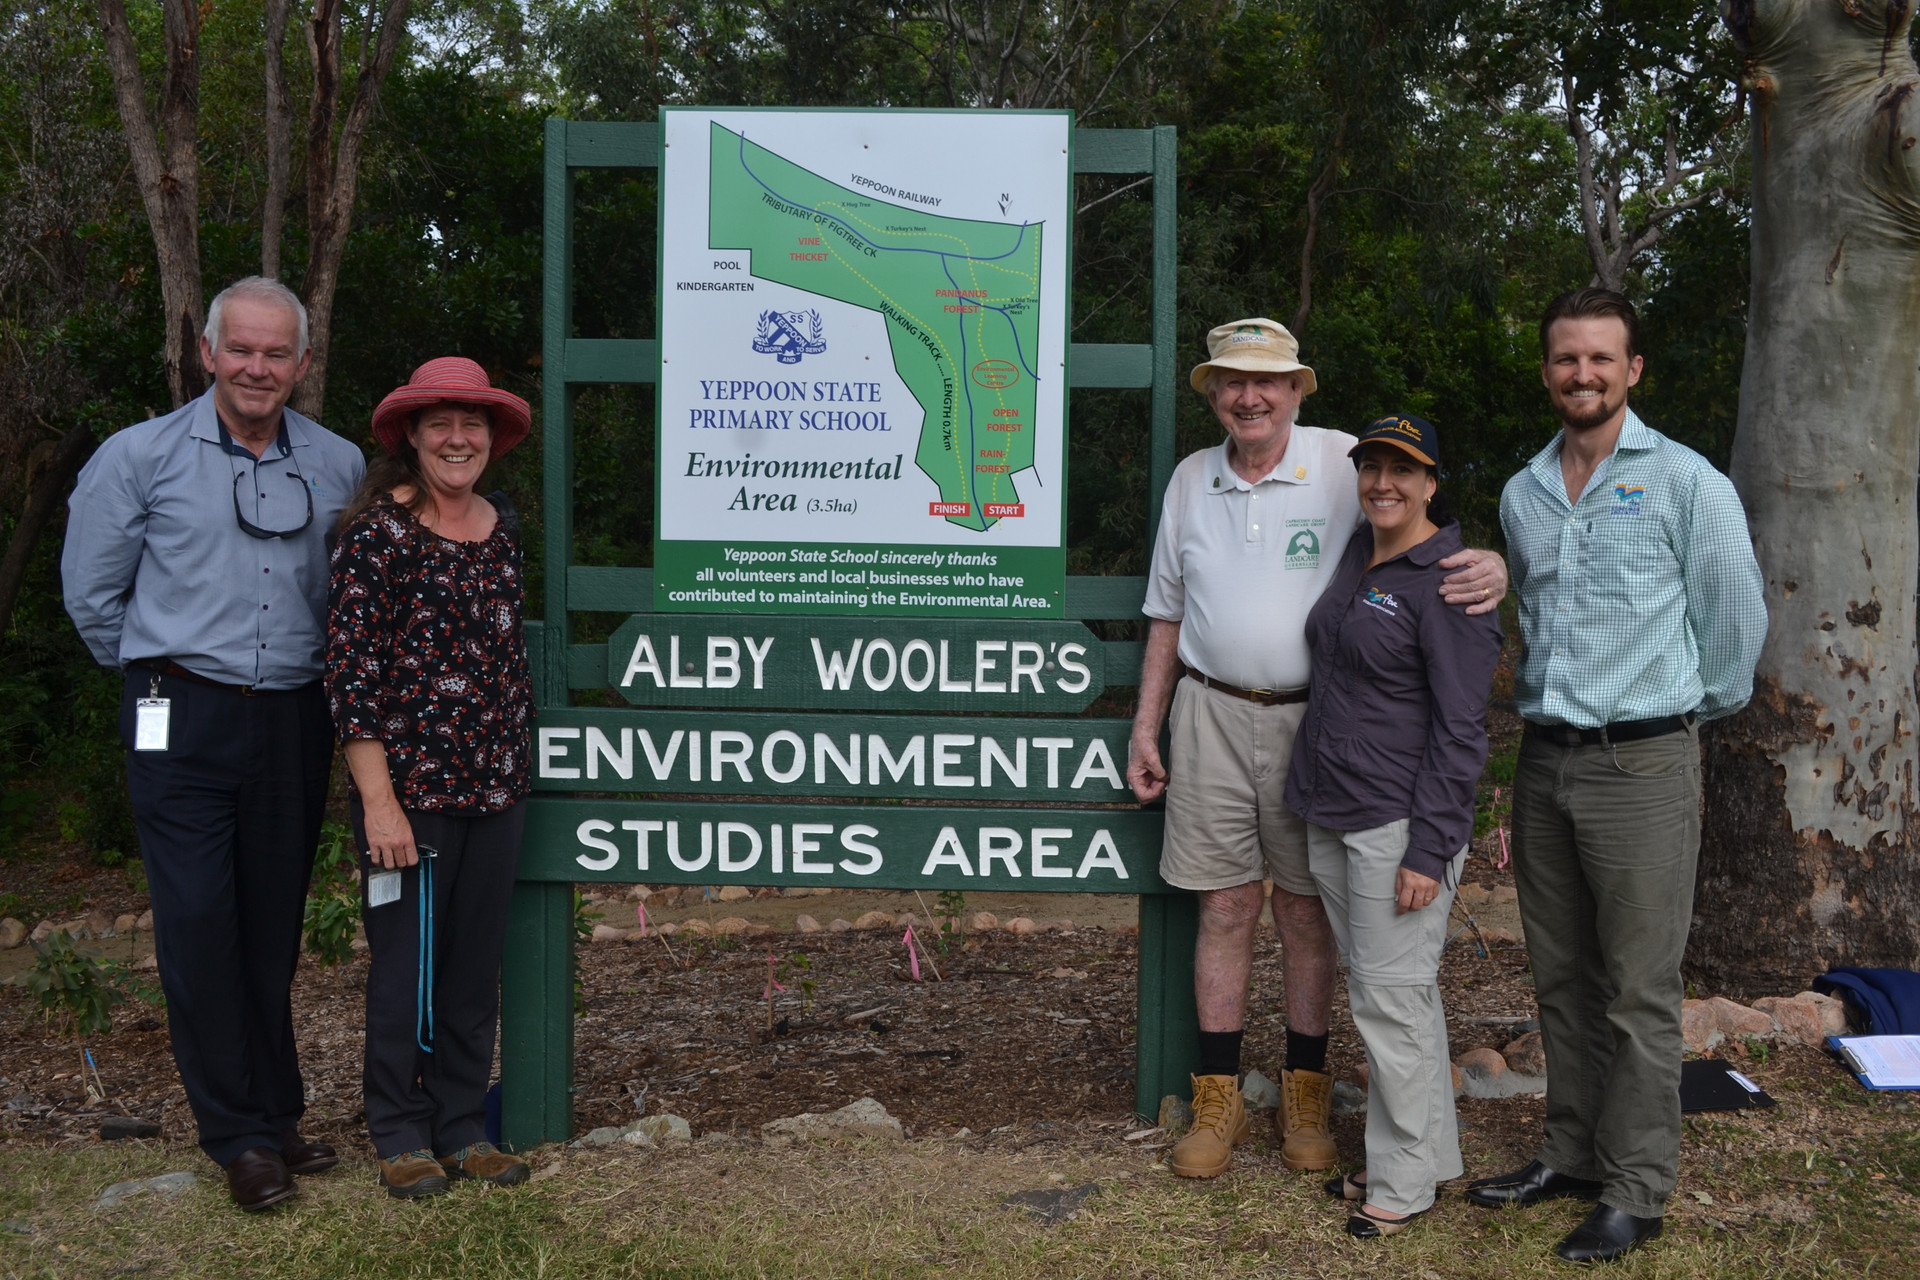 The Envirotrail renamed in honour of Alby Wooler